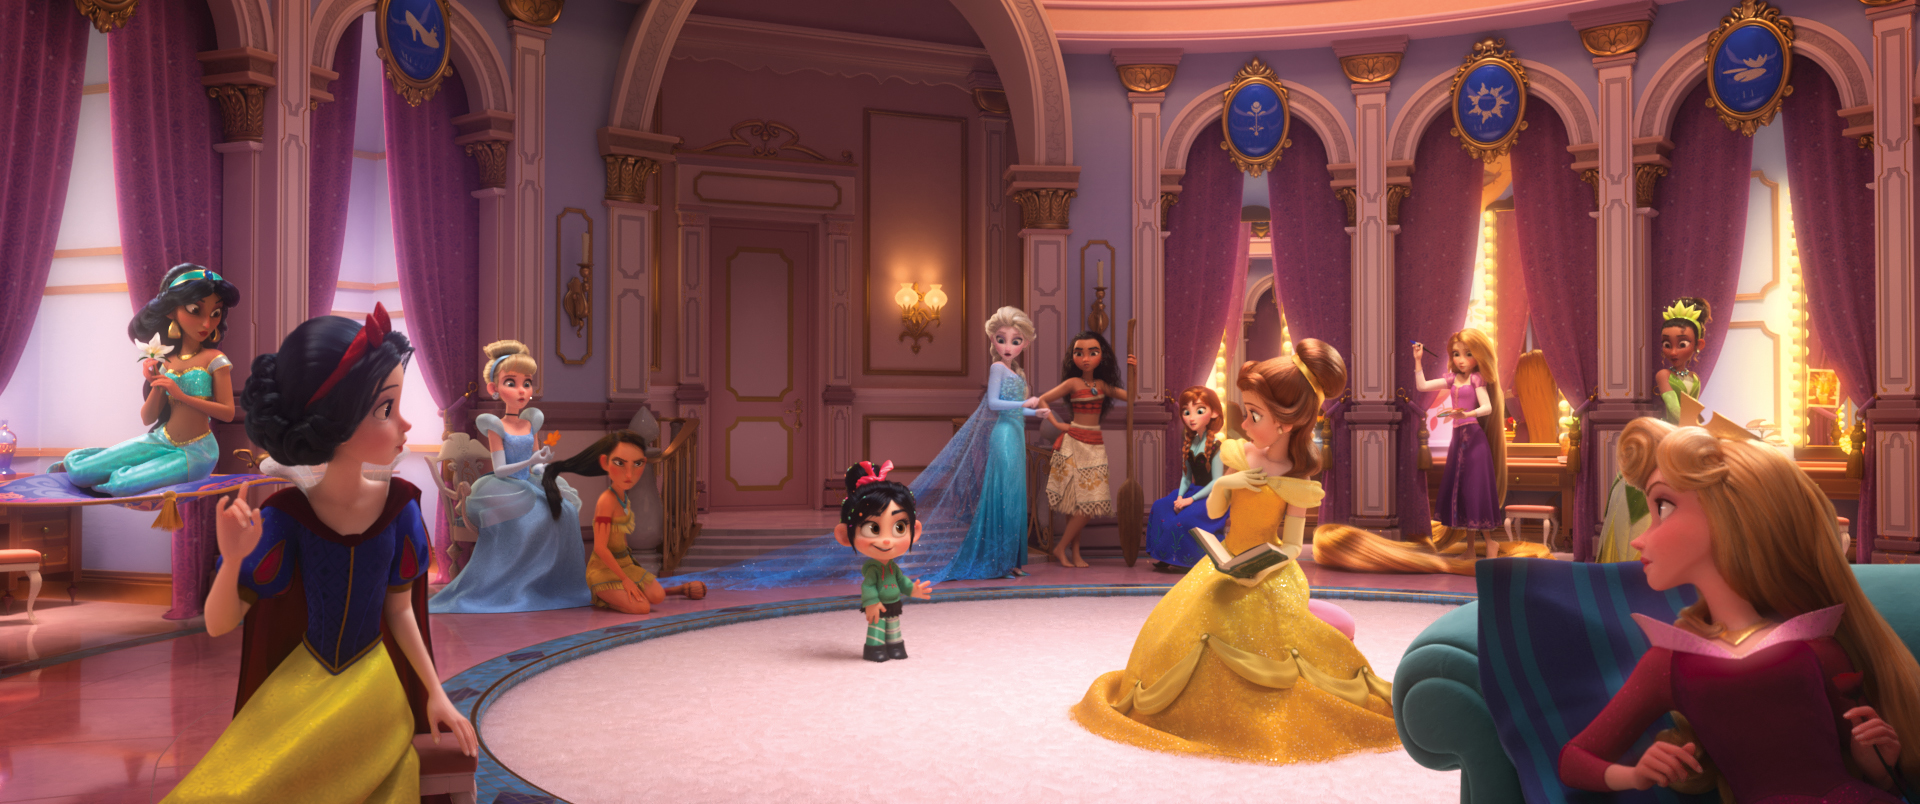 Wreck It Ralph 2 Sneak Peek, Wreck It Ralph Princess Scene